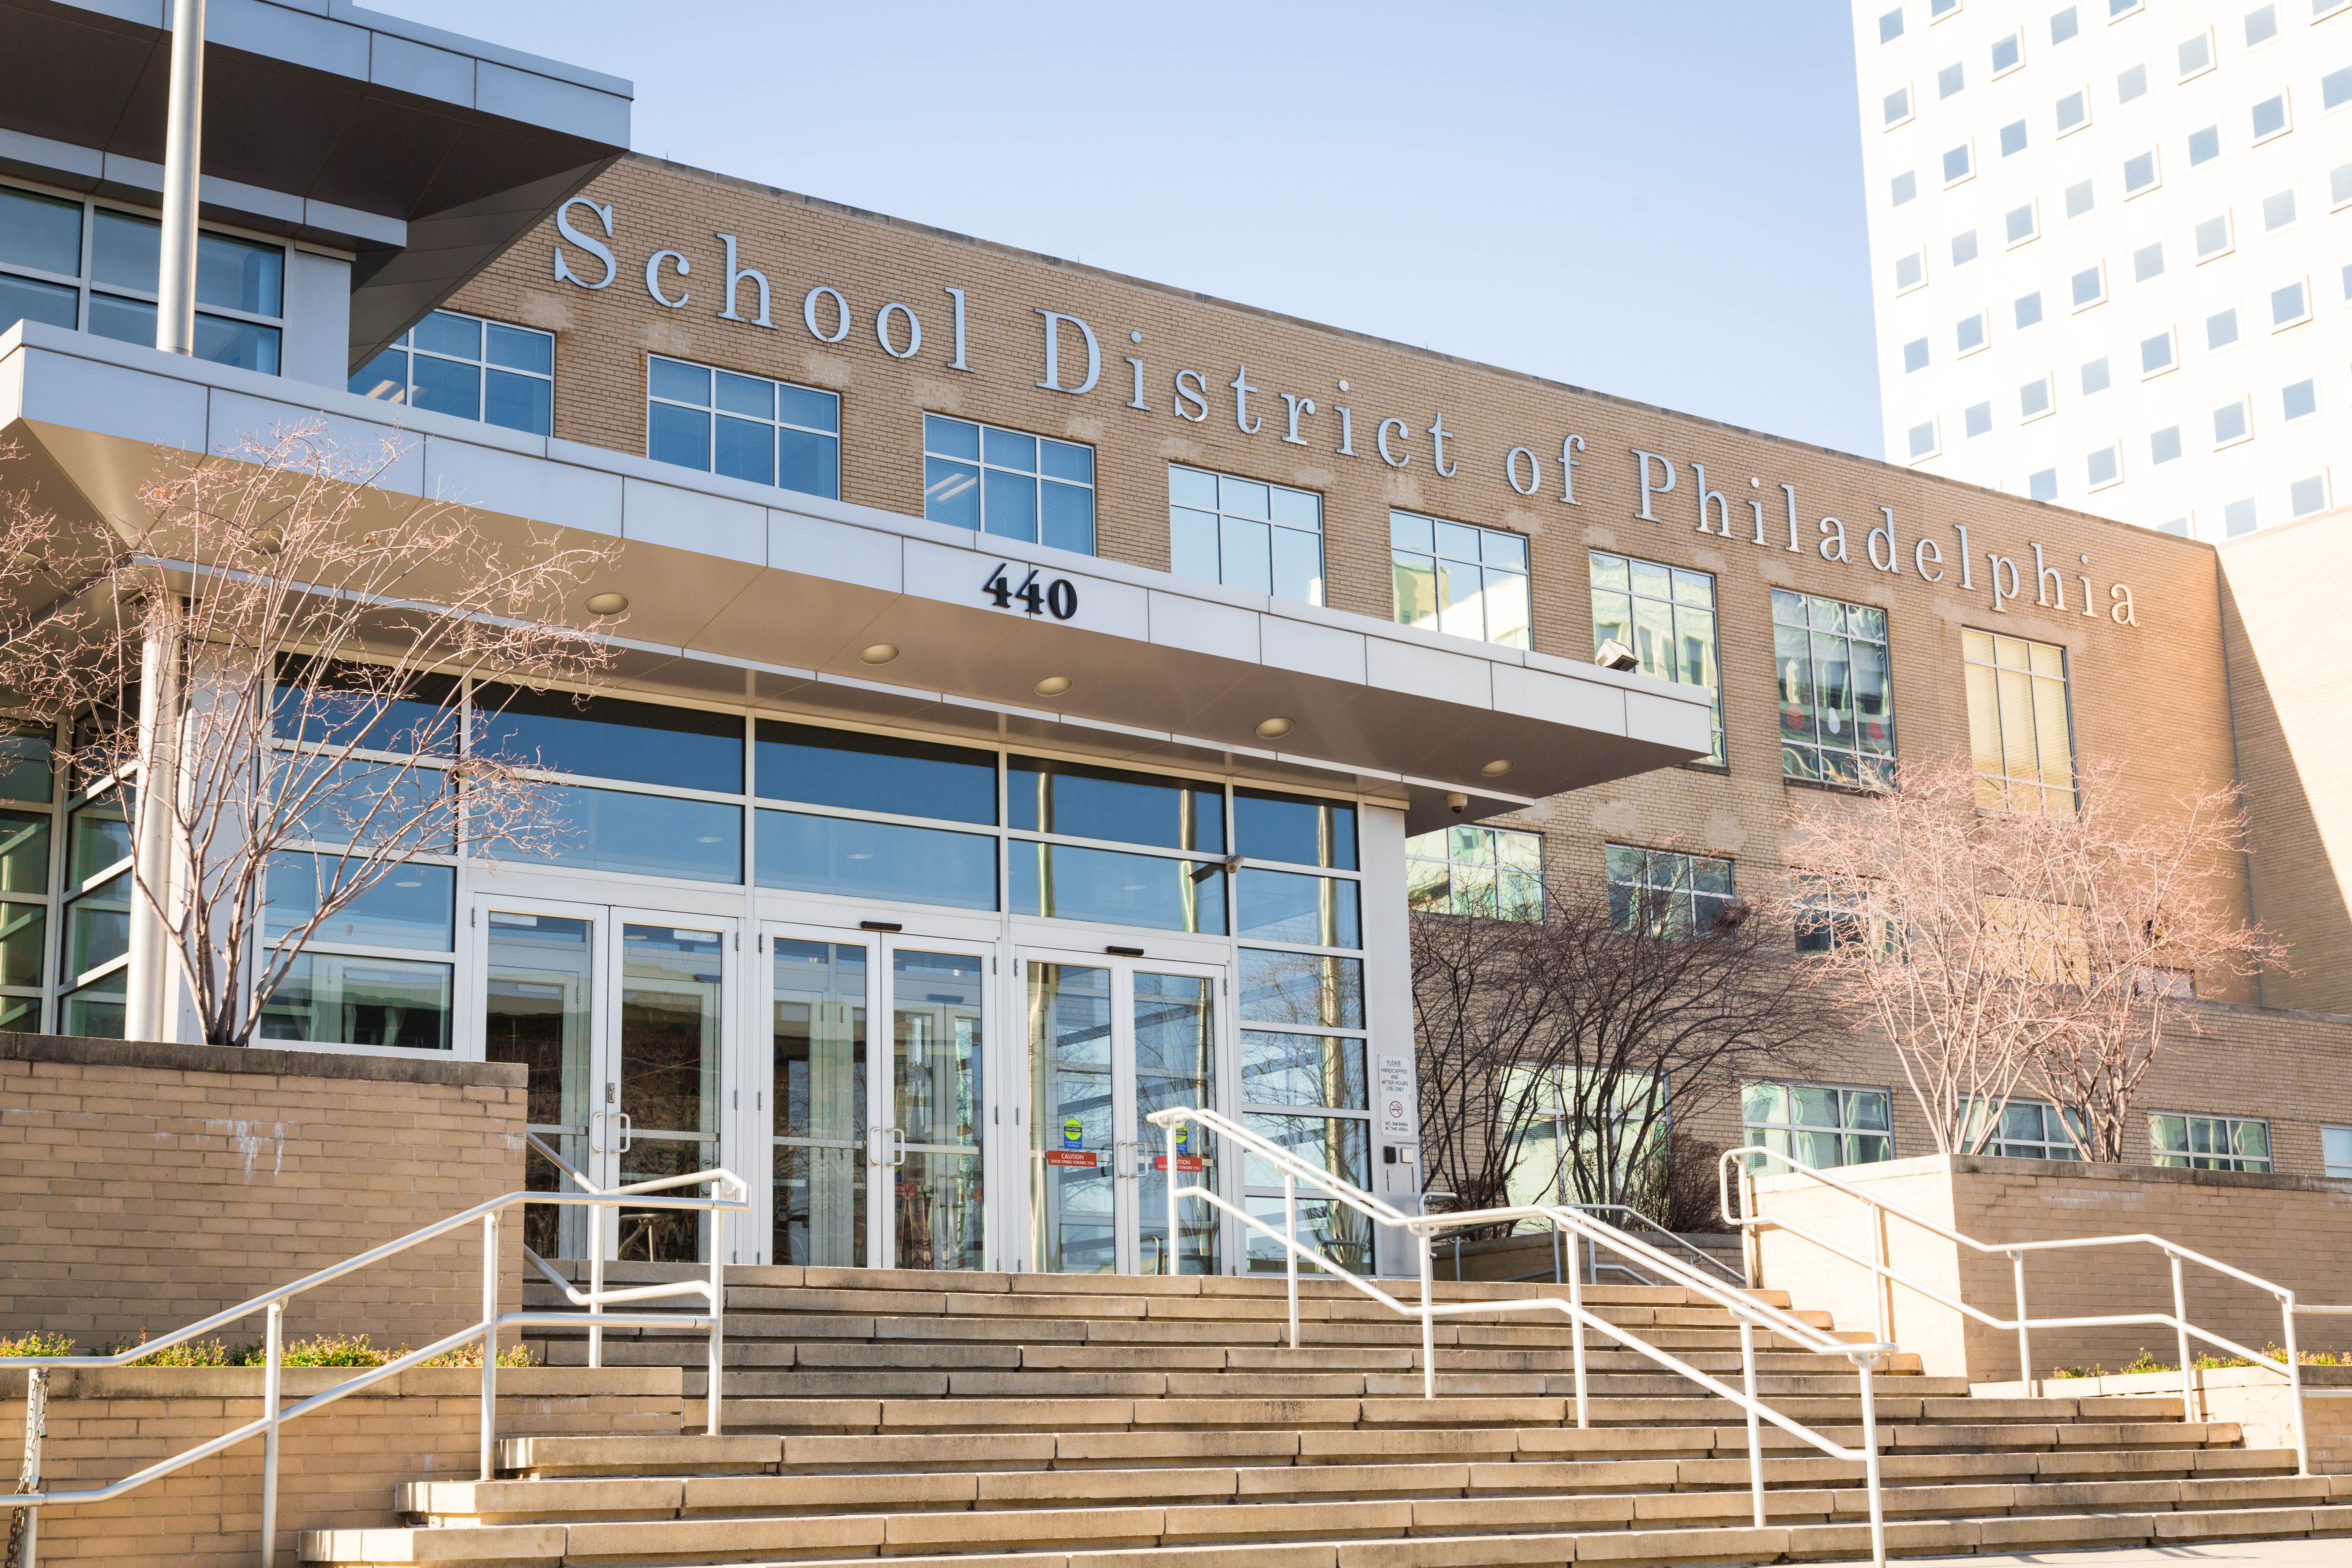 The nominating panel for the School District of Philadelphia announced the names of 27 candidates for the new school board in a public meeting on Feb. 26. Mayor Kenney requested they submit an additional 18 names on March 8. Photo: Samantha Laub / AL DÍA News